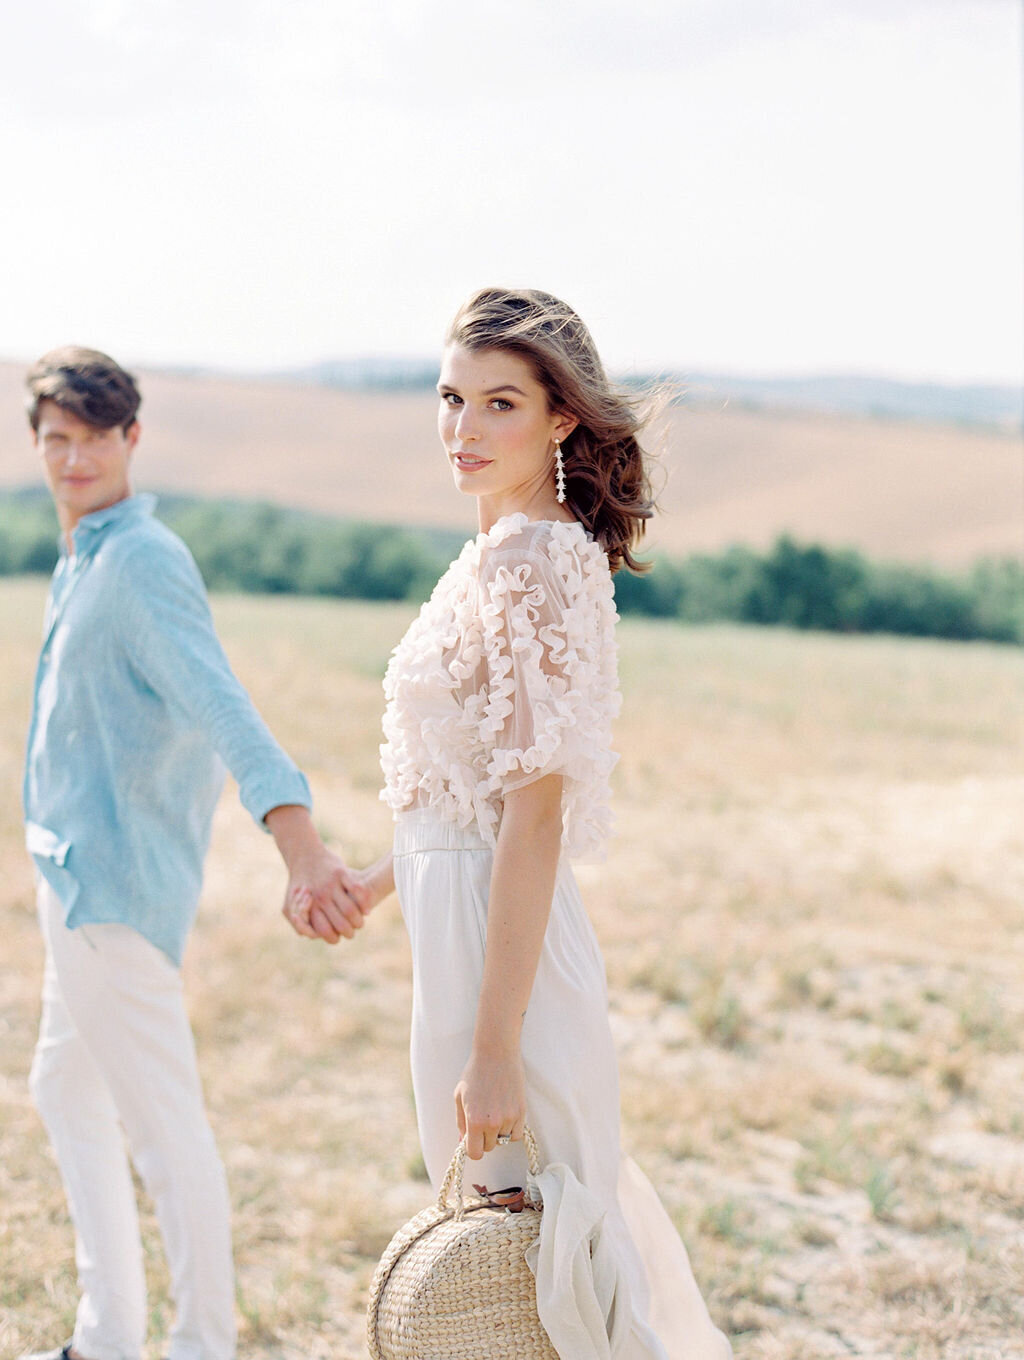 Trine_Juel_hair_and_makeupartist_wedding_ItalyQuicksallPhotography_TuscanyEngagementSession_-25